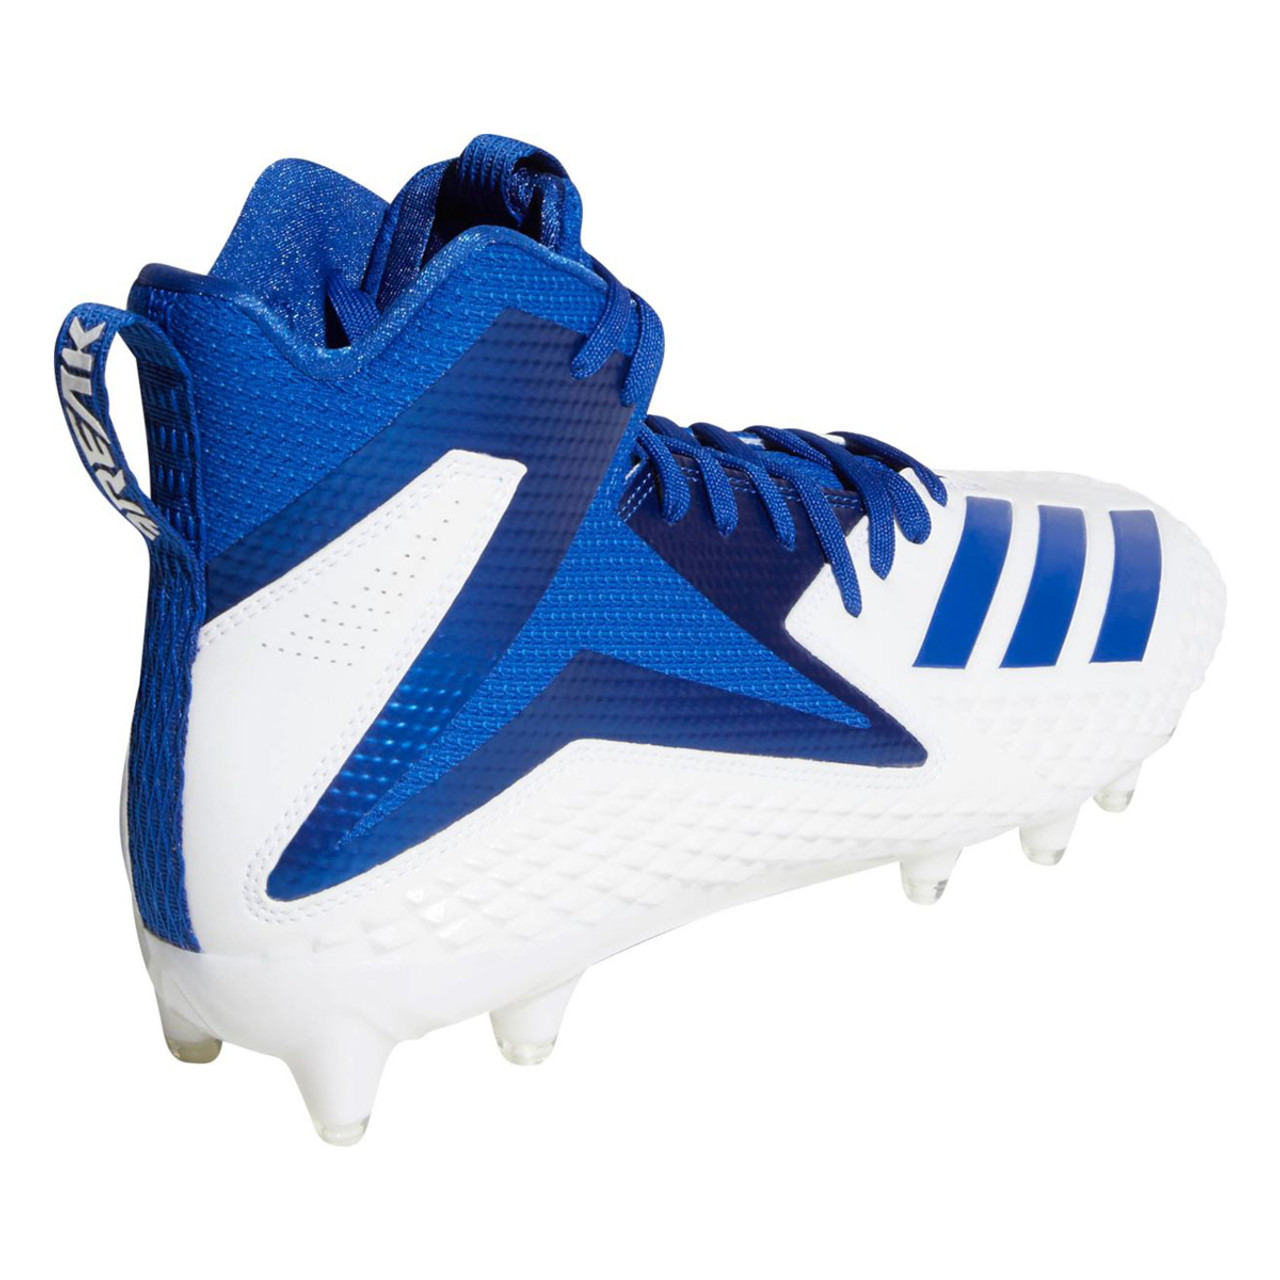 d499e1eaf9b ... Royal · Adidas Freak X Carbon Mid Men s Football Cleats DB0566 - White